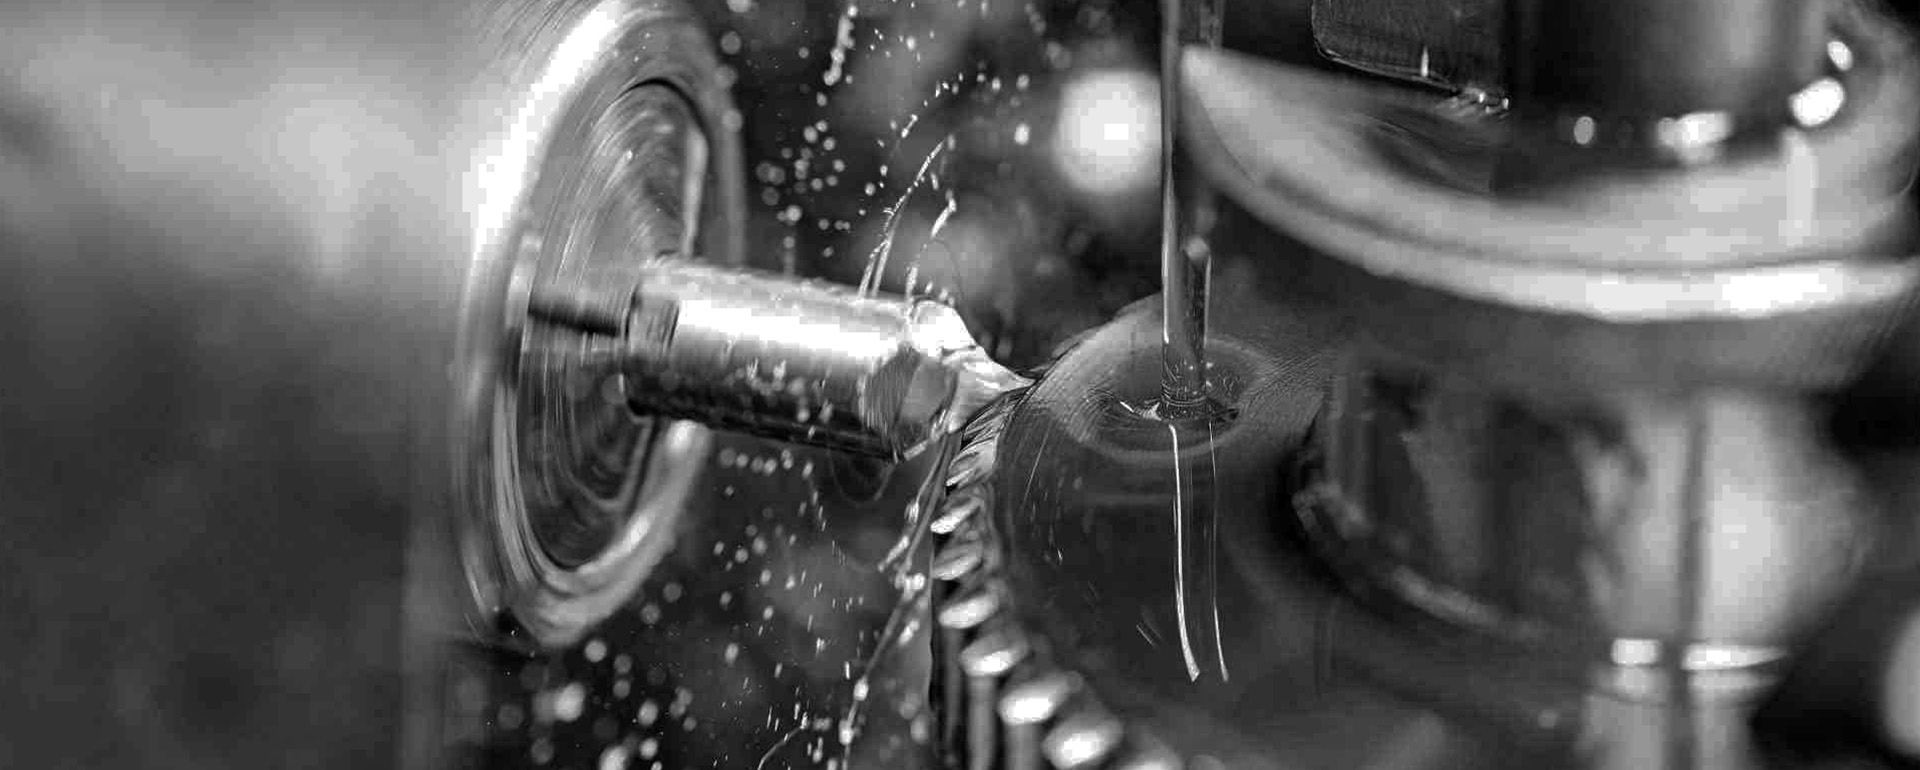 ULTRA PRECISION CNC  MACHINES FOR SPARE PART FABRICATION